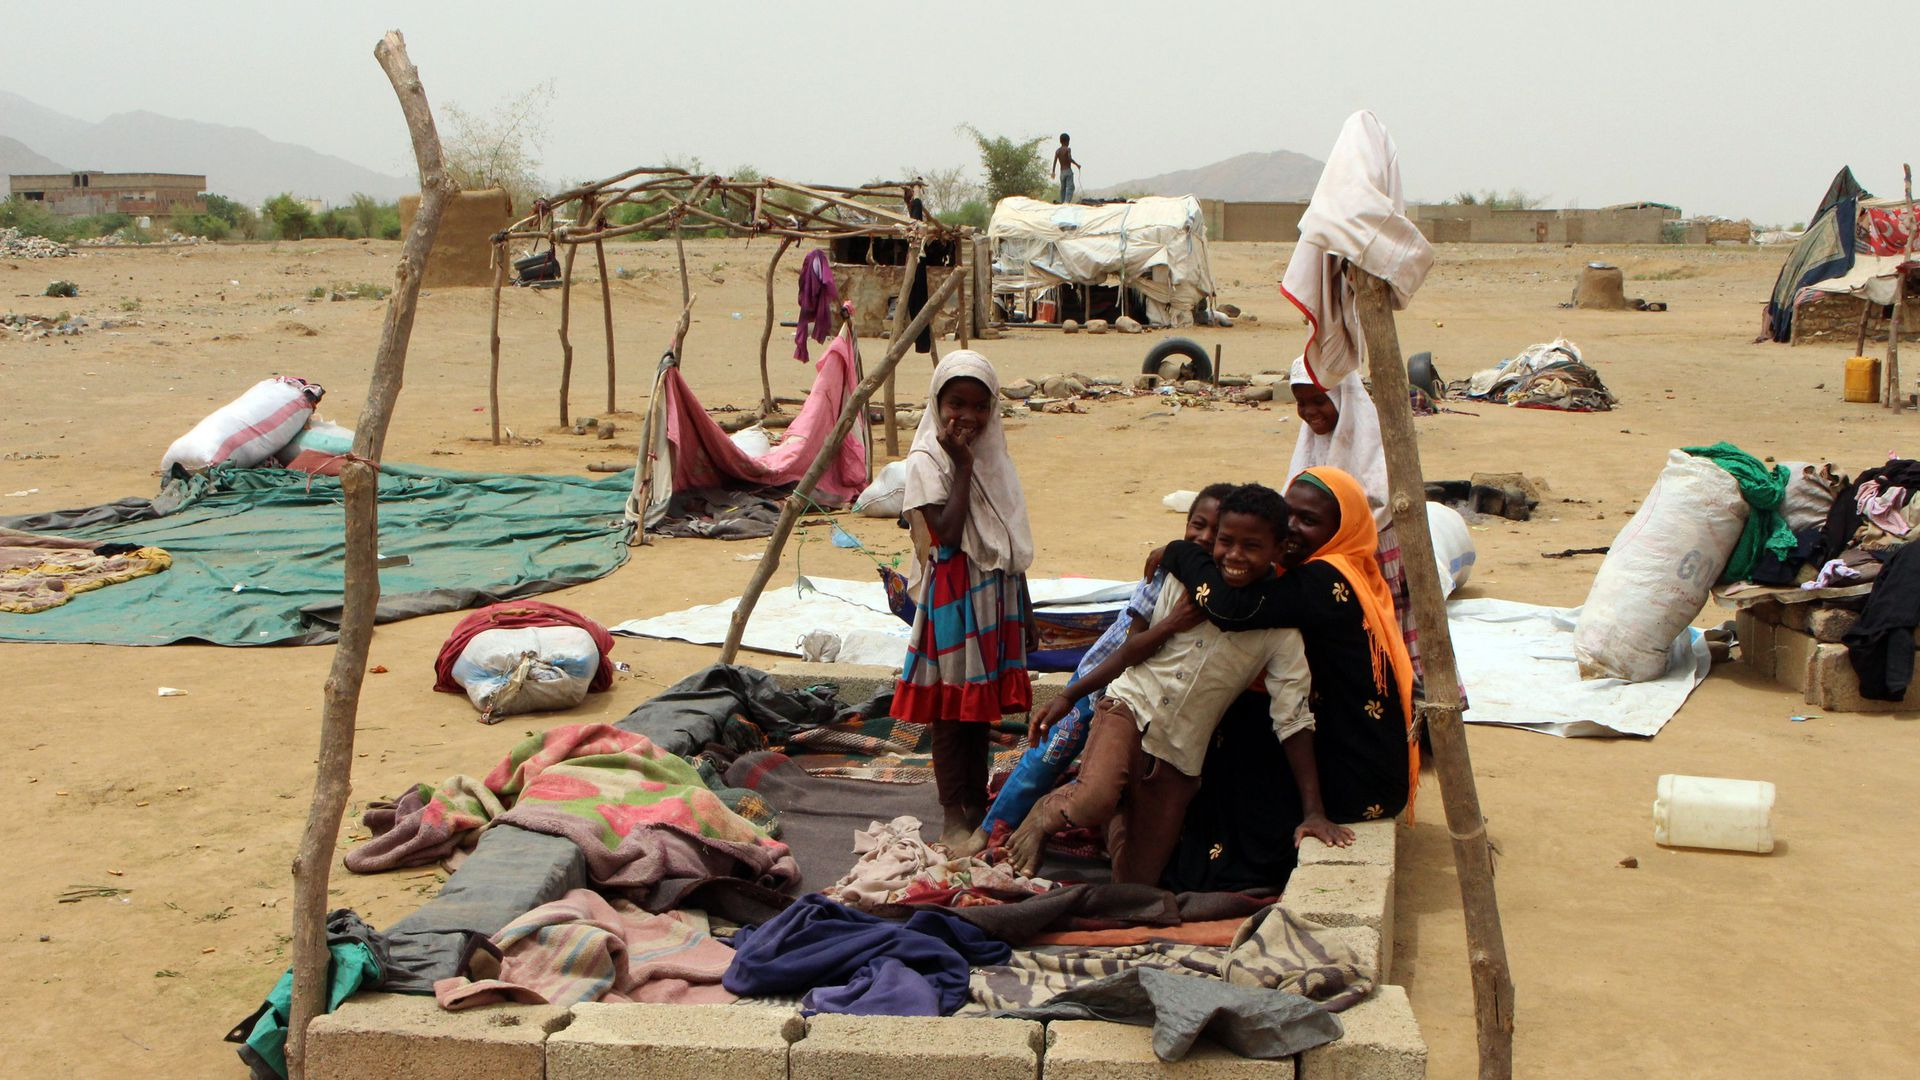 Displaced residents of Hodeida, Yemen, in a make-shift shelter